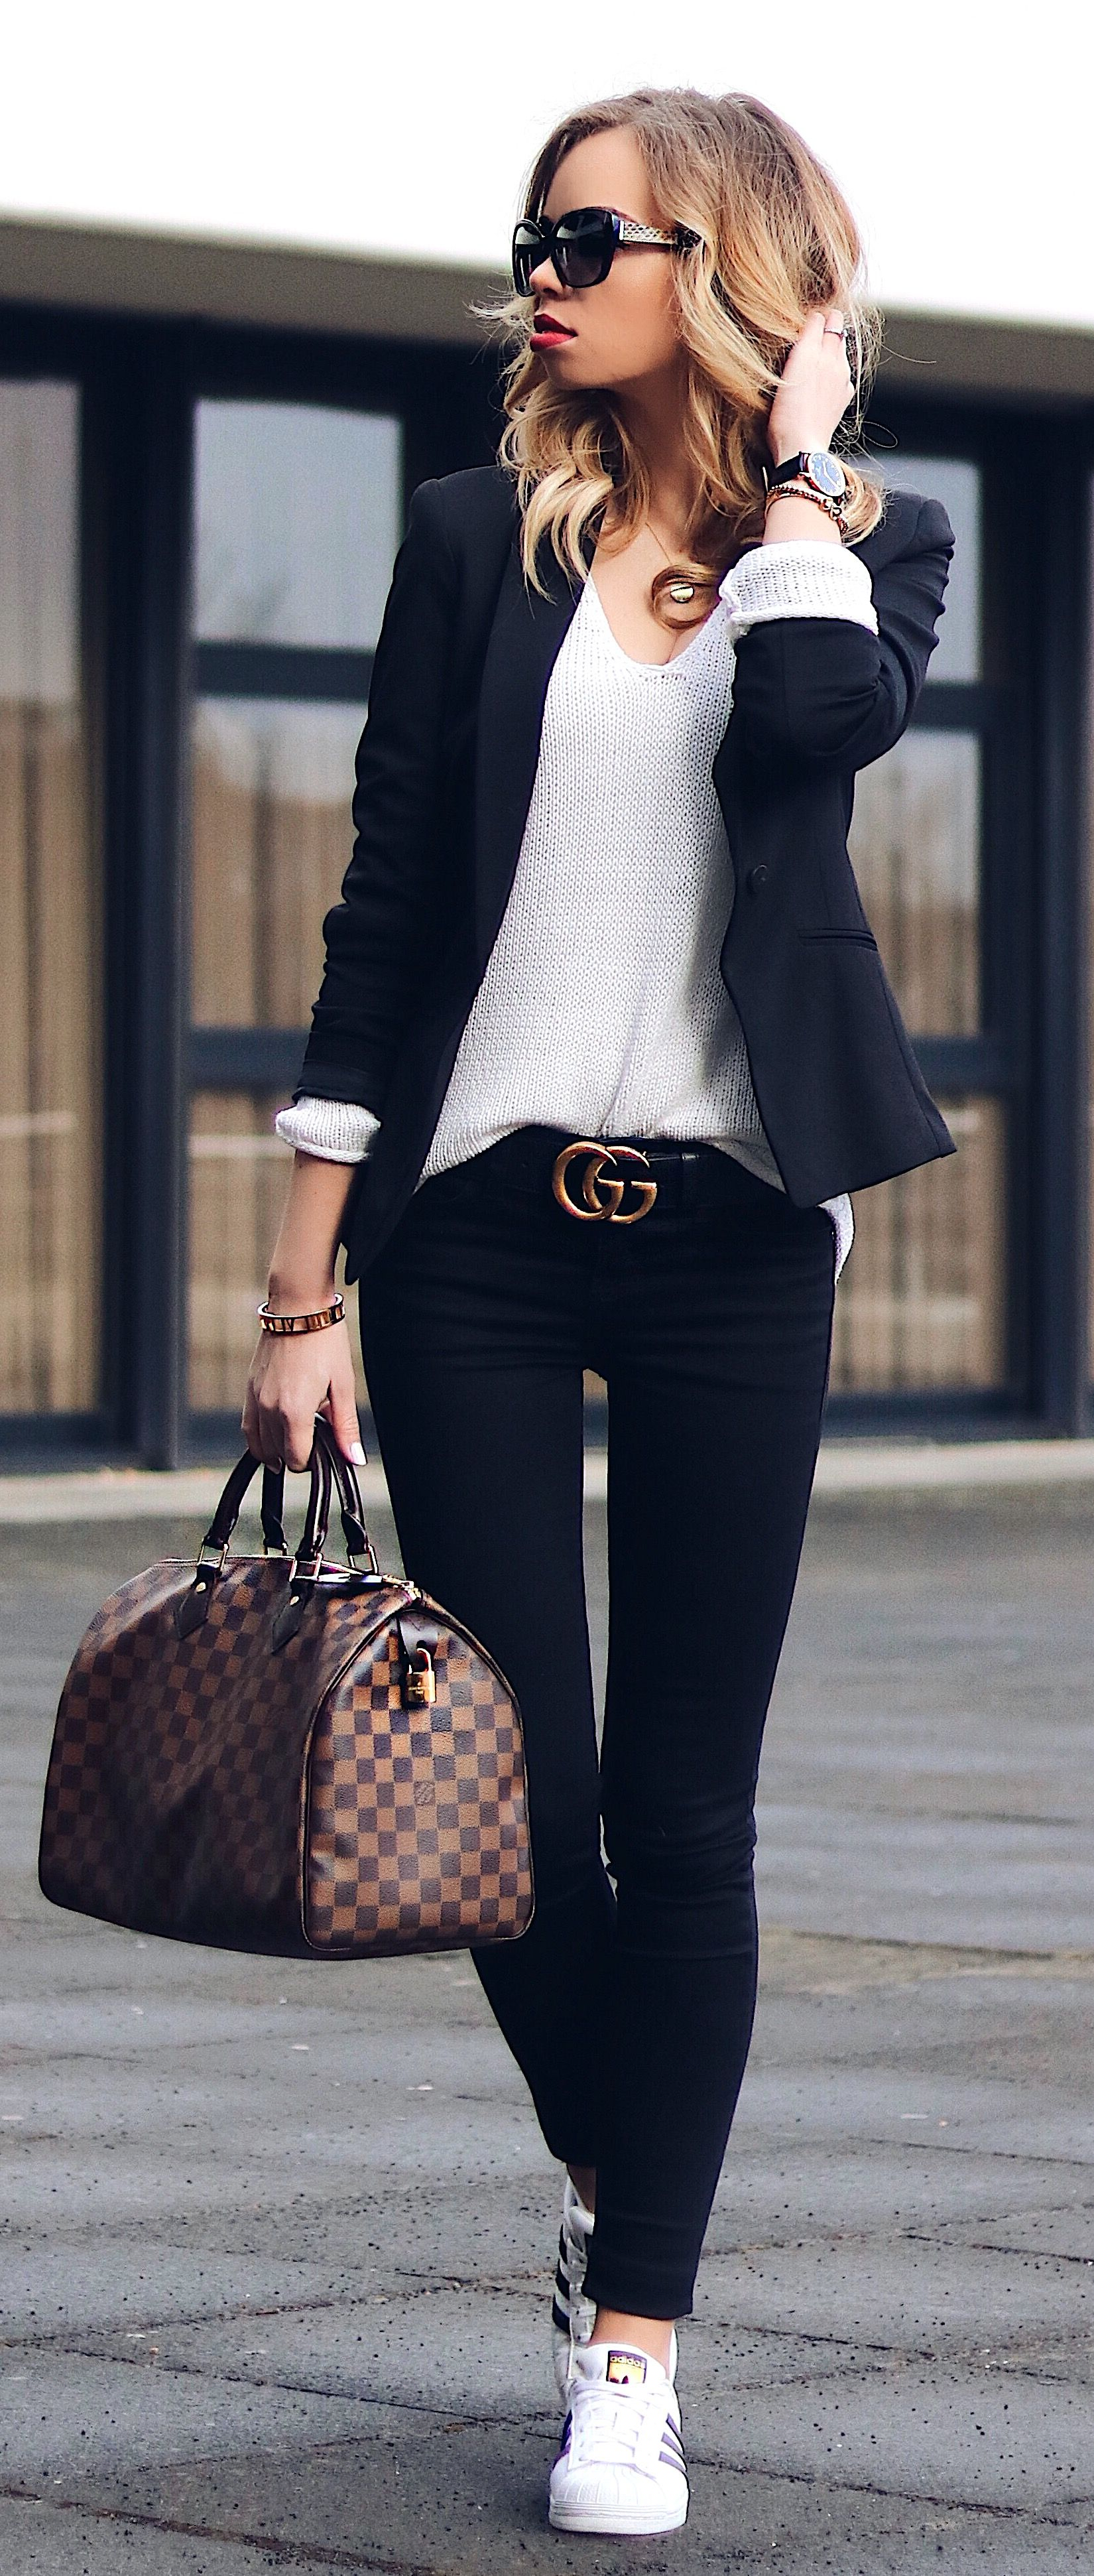 bc64e98b5fa3 Outfit-Style-Fashion-Casual-Casual Chic-Gucci-Gucci Gürtel-Gucci Belt-Louis  Vuitton-Speedy-Blazer-Black and white-chic-Streetstyle